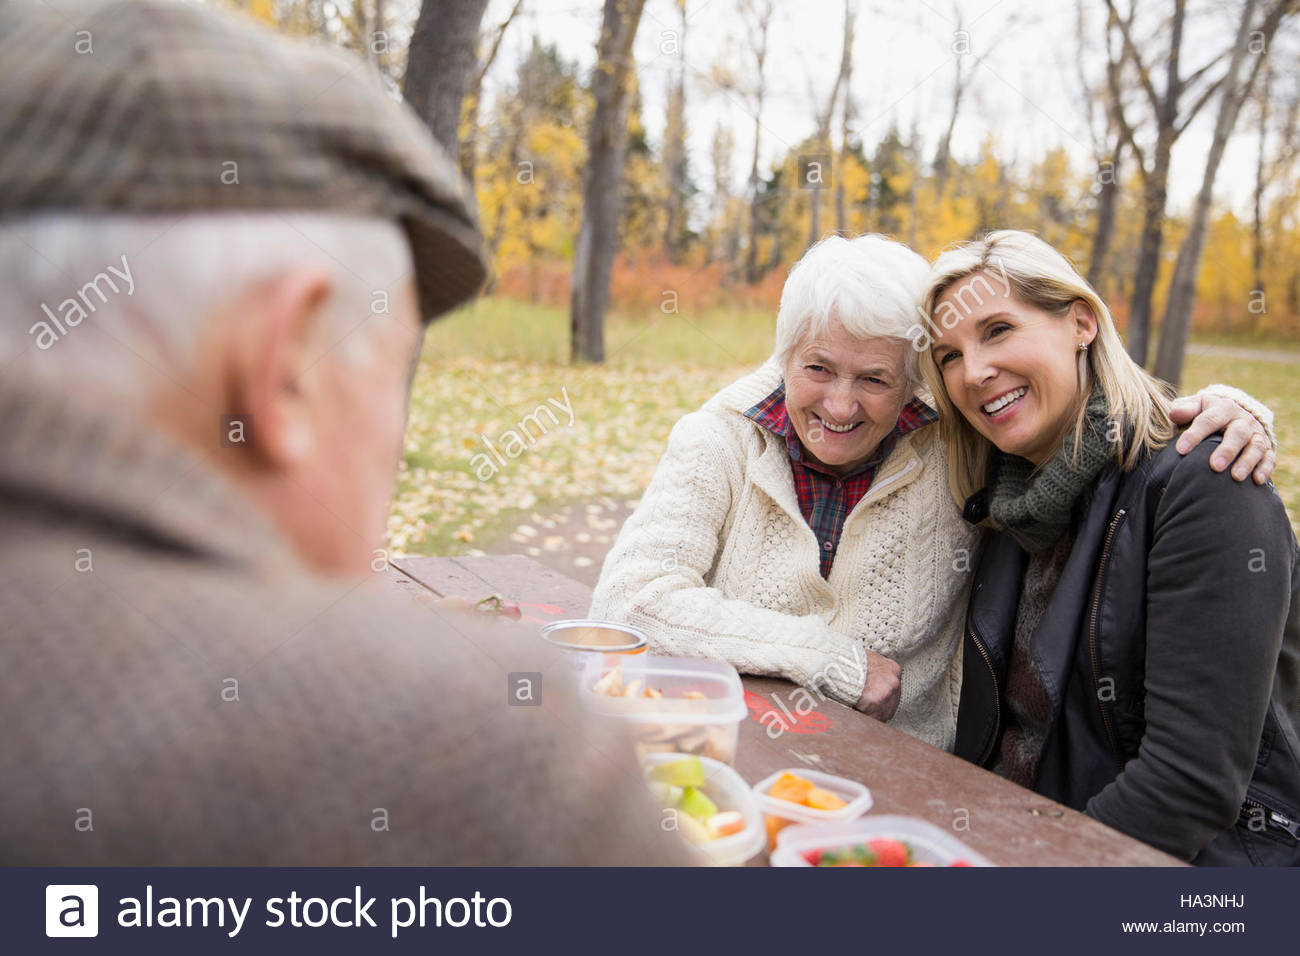 Mother and daughter hugging enjoying picnic at table in autumn park - Stock Image